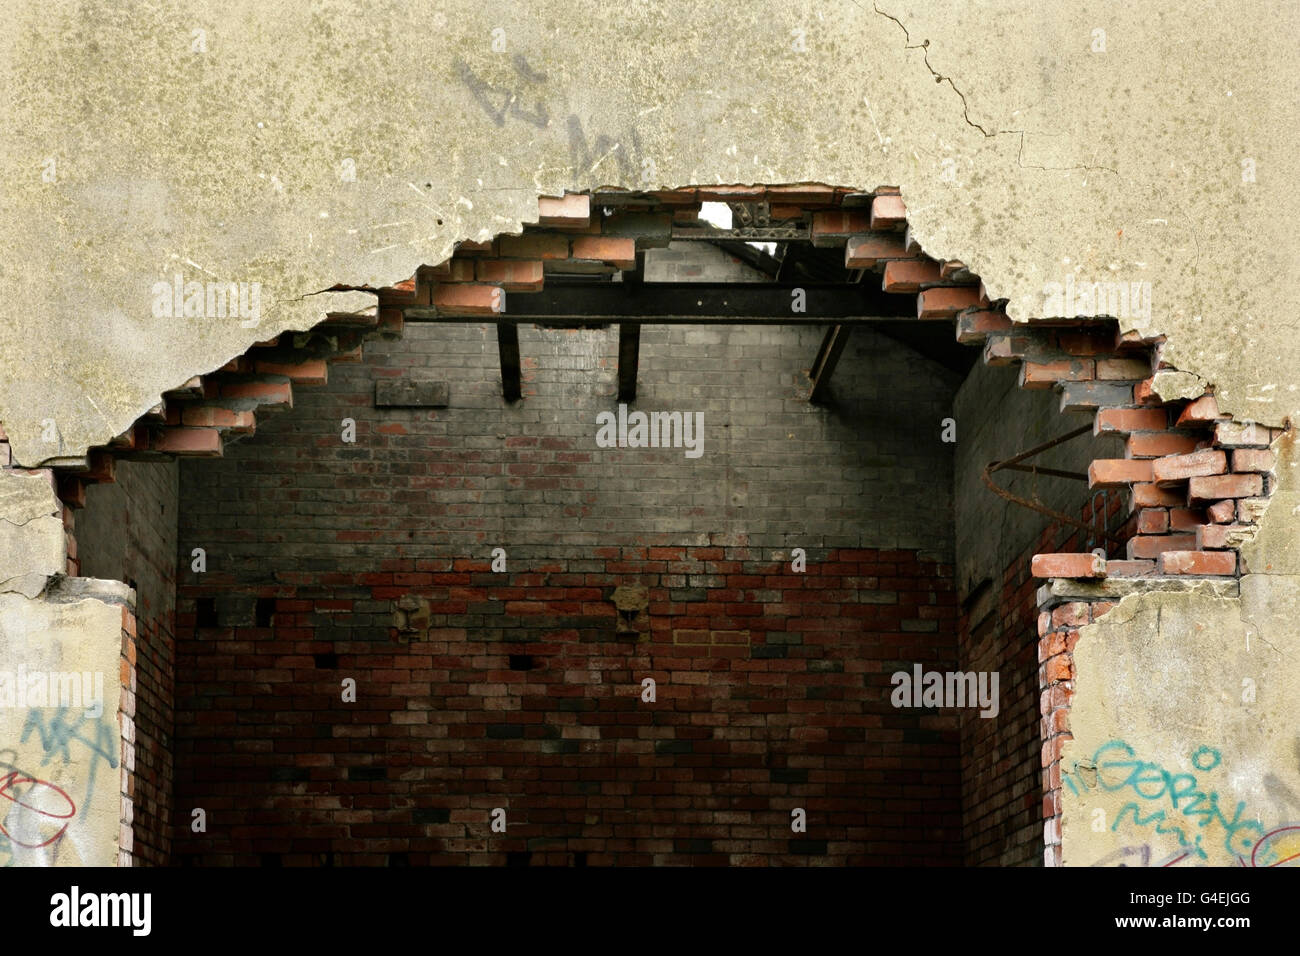 Brick wall collapsing after removal of steel supporting beam. - Stock Image